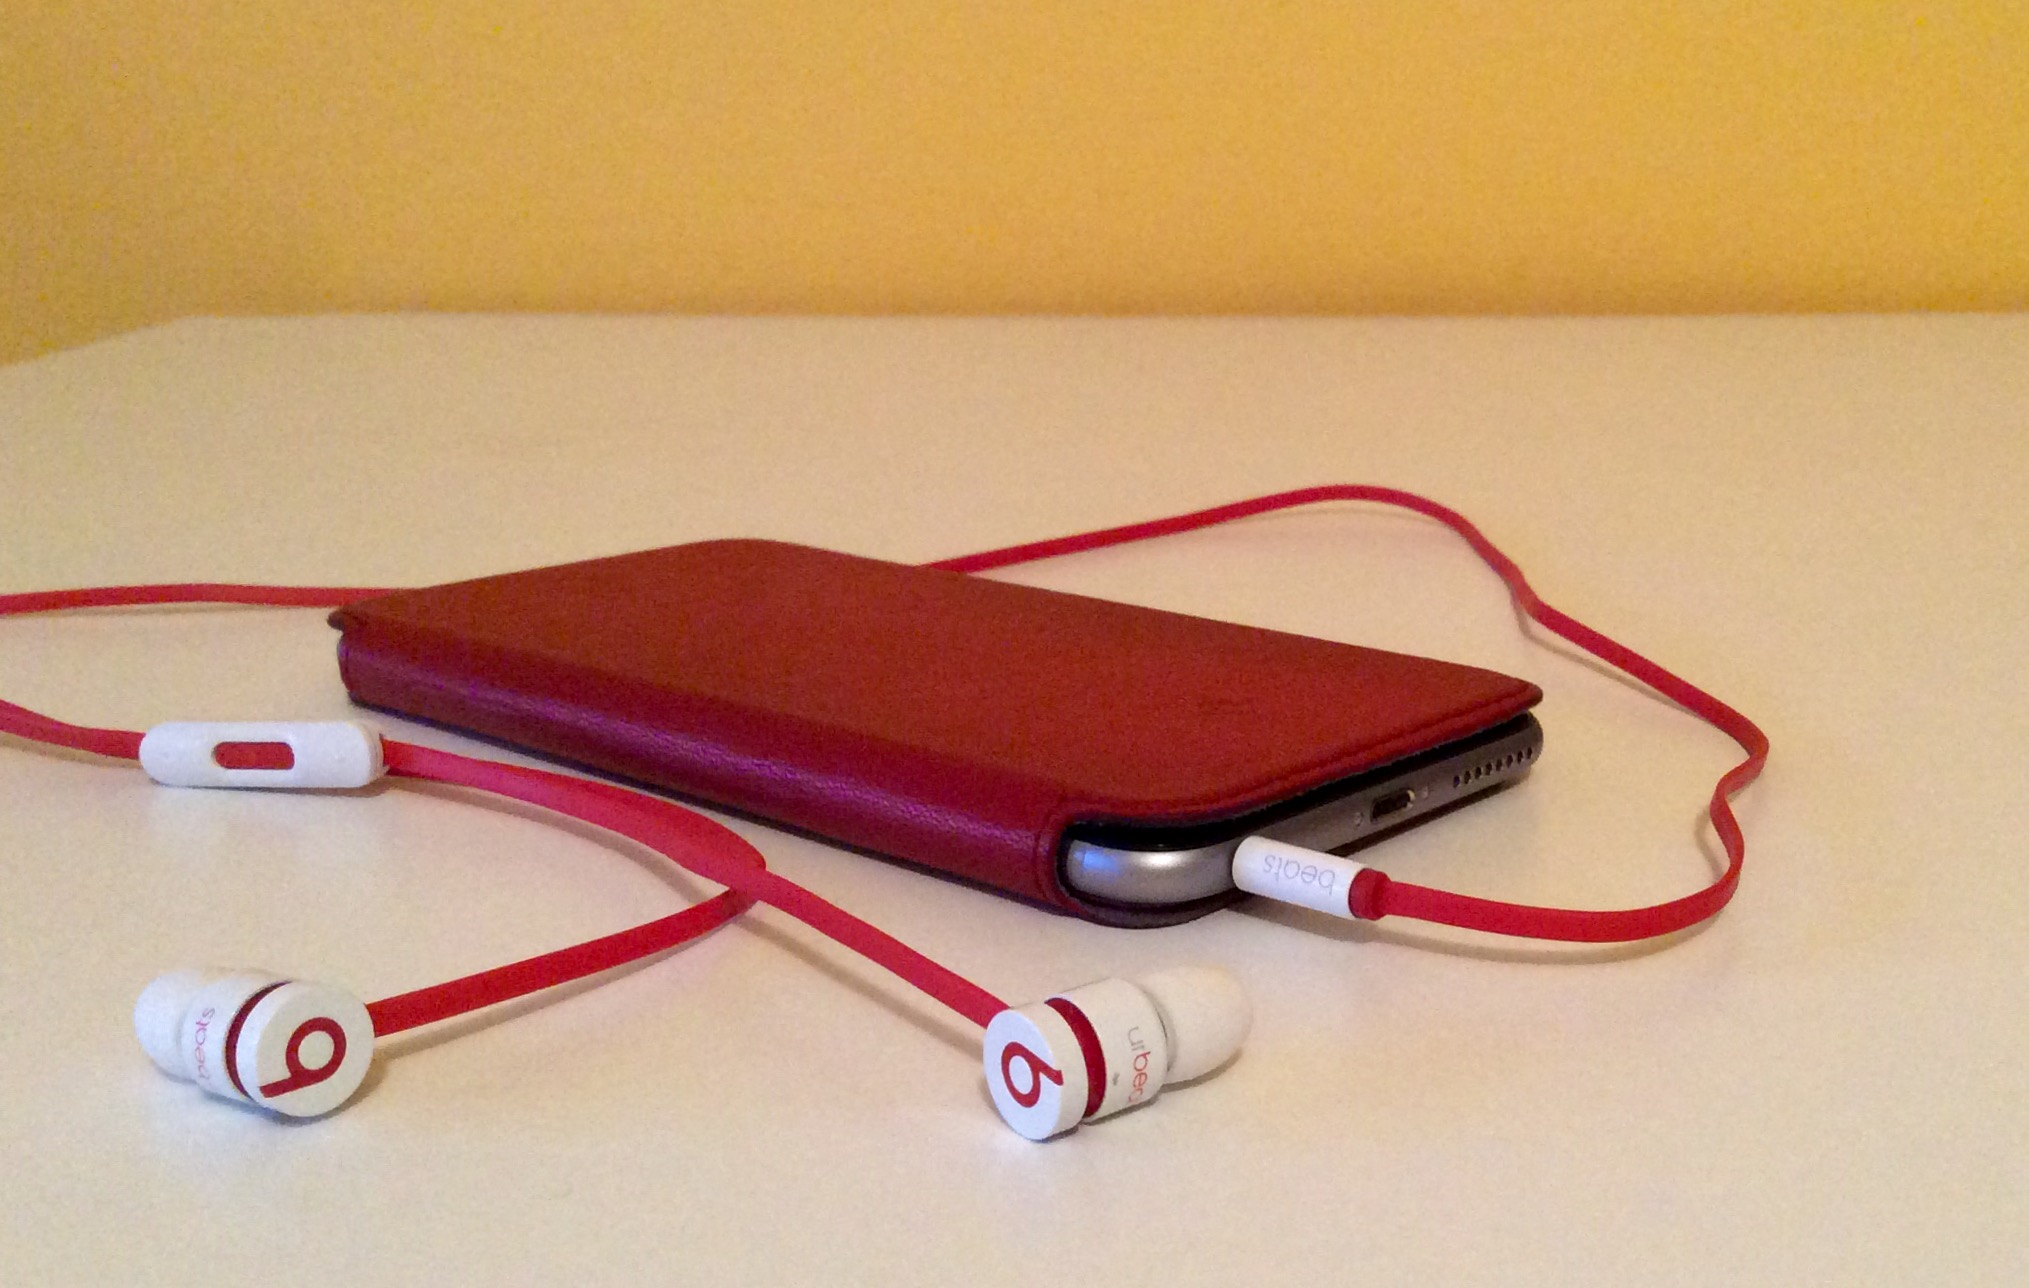 Twelve South SurfacePad for iPhone 6 Plus image 00019